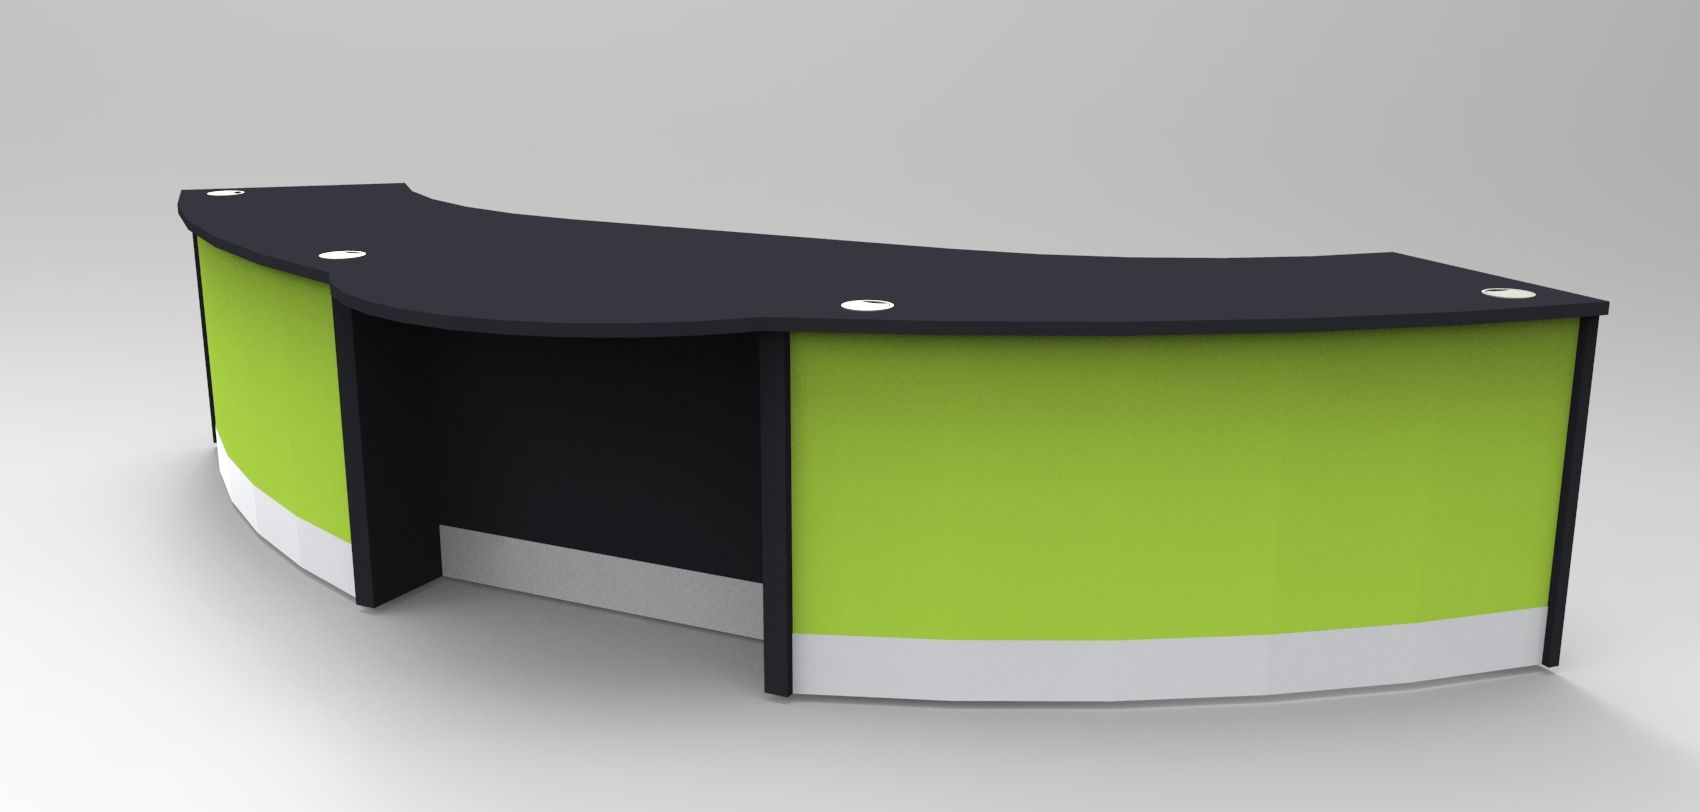 Officeworks Stools Aero Dda Reception Desk Finished In Black With Lime Green